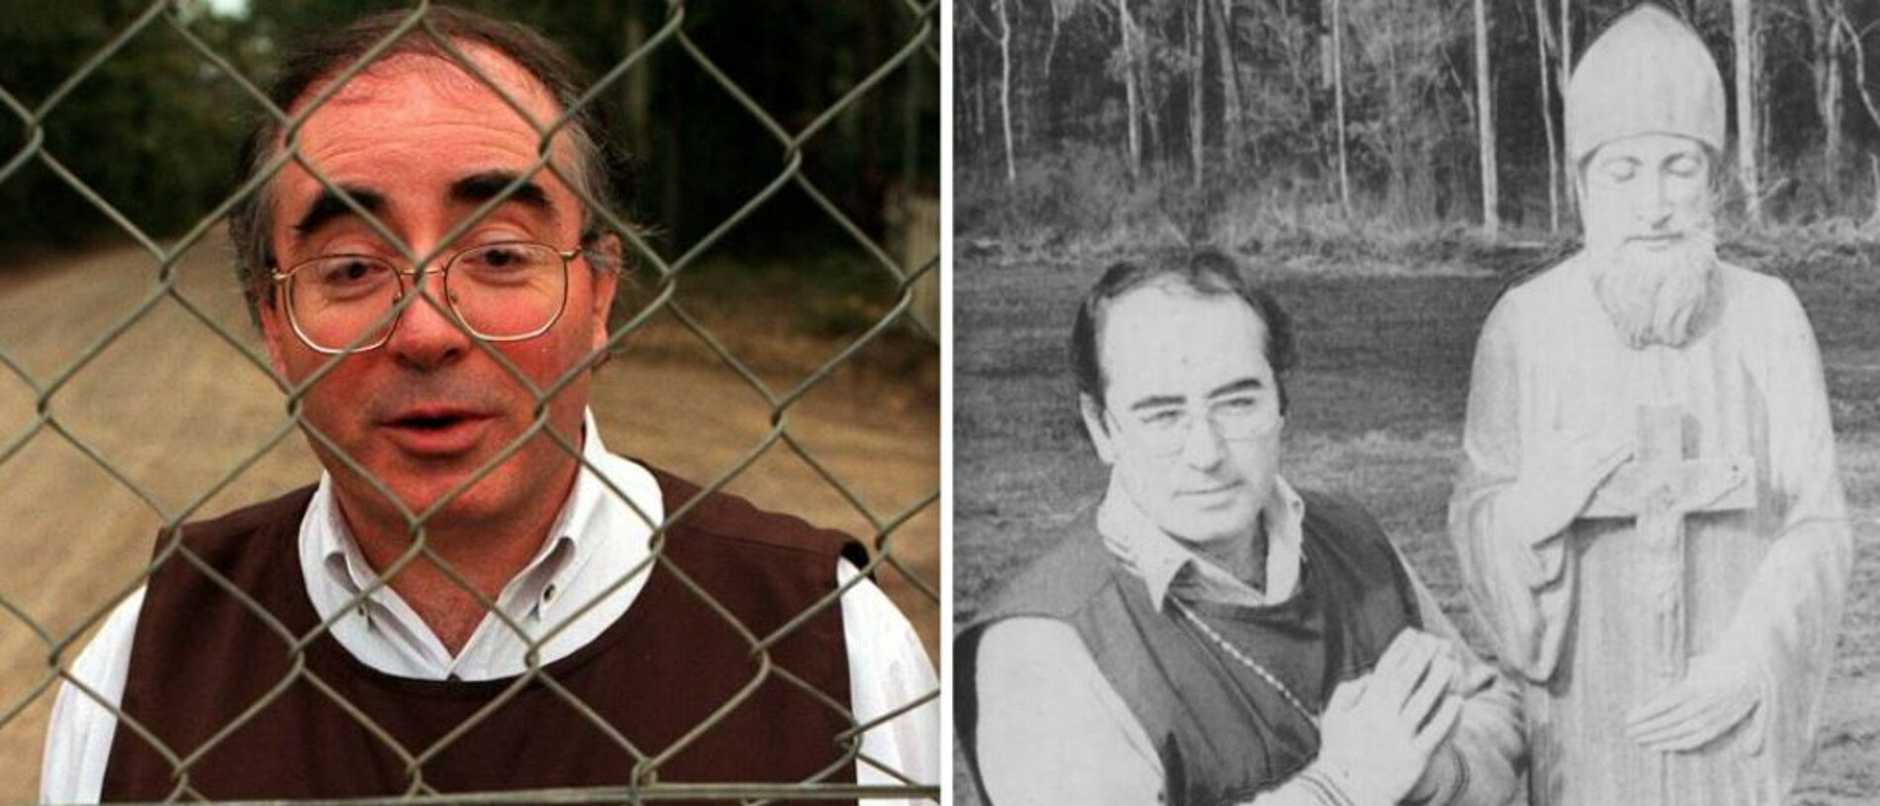 William John Costellia-Kamm, known to his followers as Little Pebble, founded the Order of Saint Charbel near Nowra in the 1980s and preached about the end of days. He was locked up for nearly a decade after having sex with two teen girls.